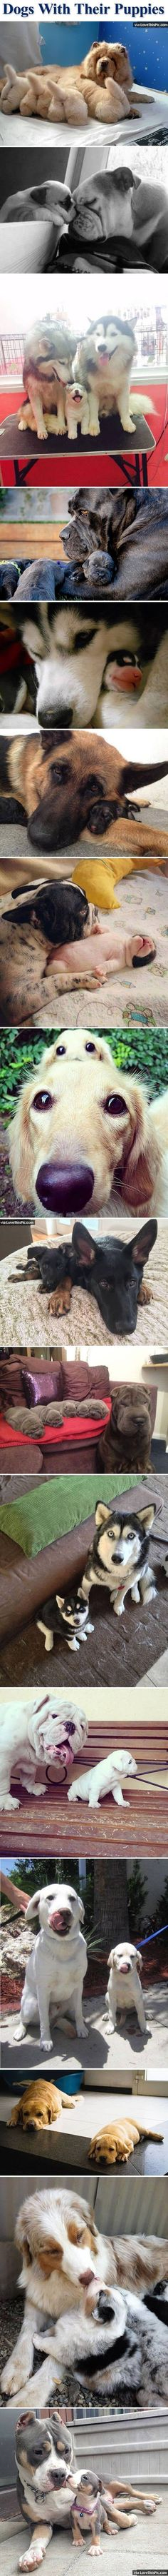 Dogs With Their Puppies